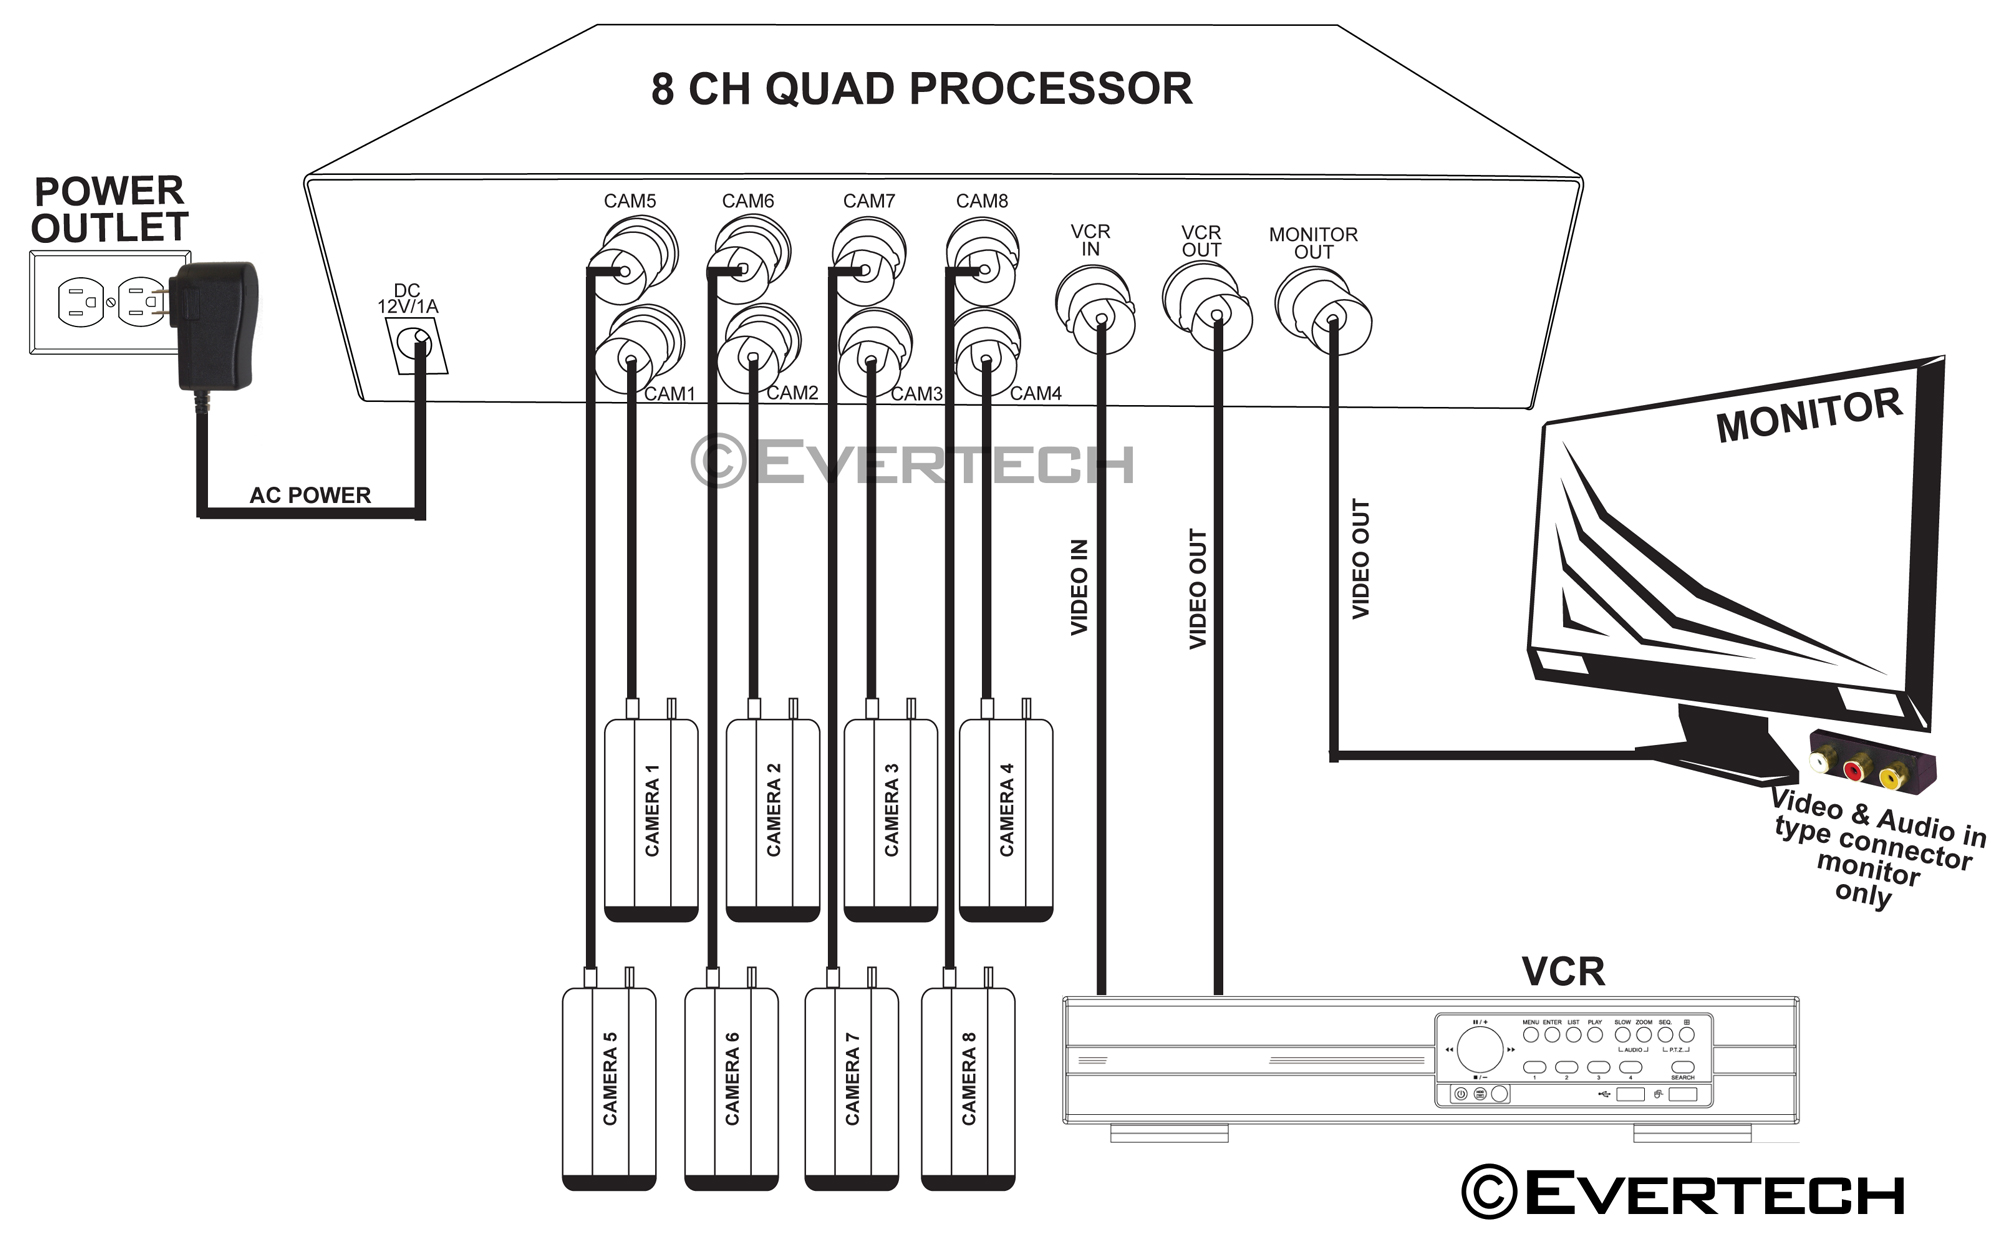 Ev Cq208 8 Channel Color Quad Processor High Quality